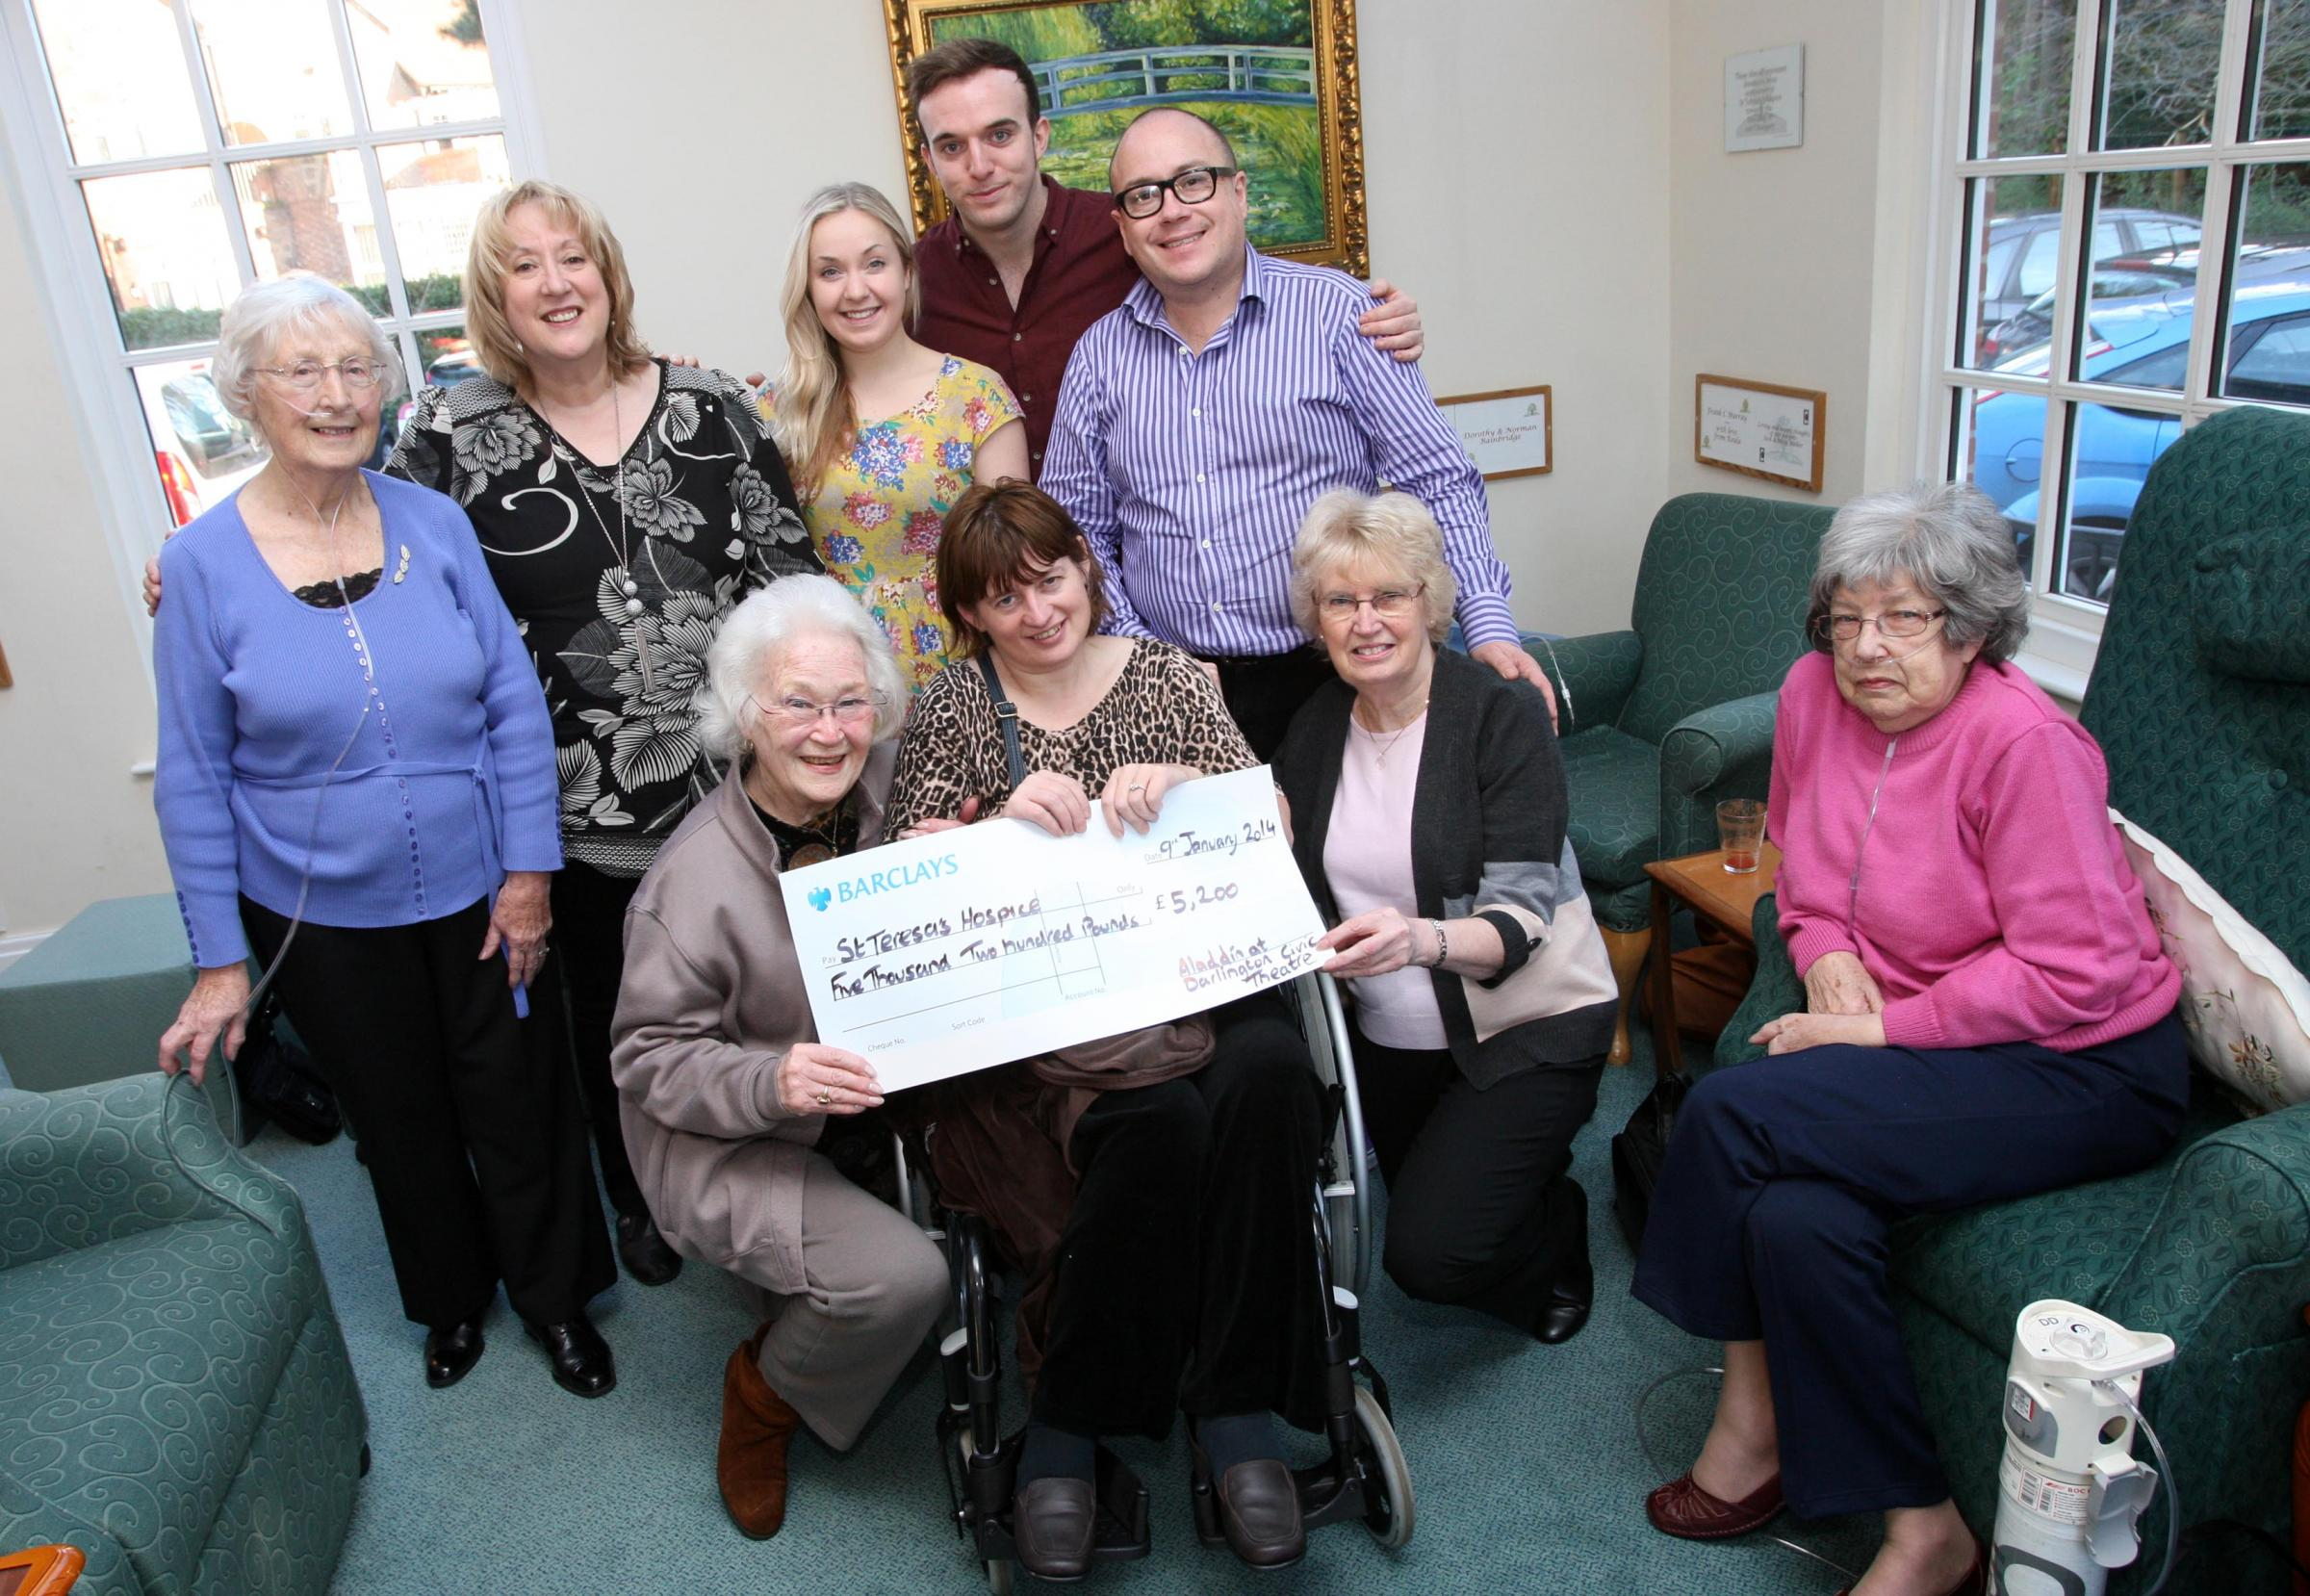 Aladdin cast members at St Teresa's Hospice to present funds raised by panto audiences (l-r) Gladys Padgett, Jane Bradshaw, Brenda Martin, Beth Stobbart, Danny Potts, Kathy Davies, Phillip Meeks, Iris Wray and Eileen Edmond